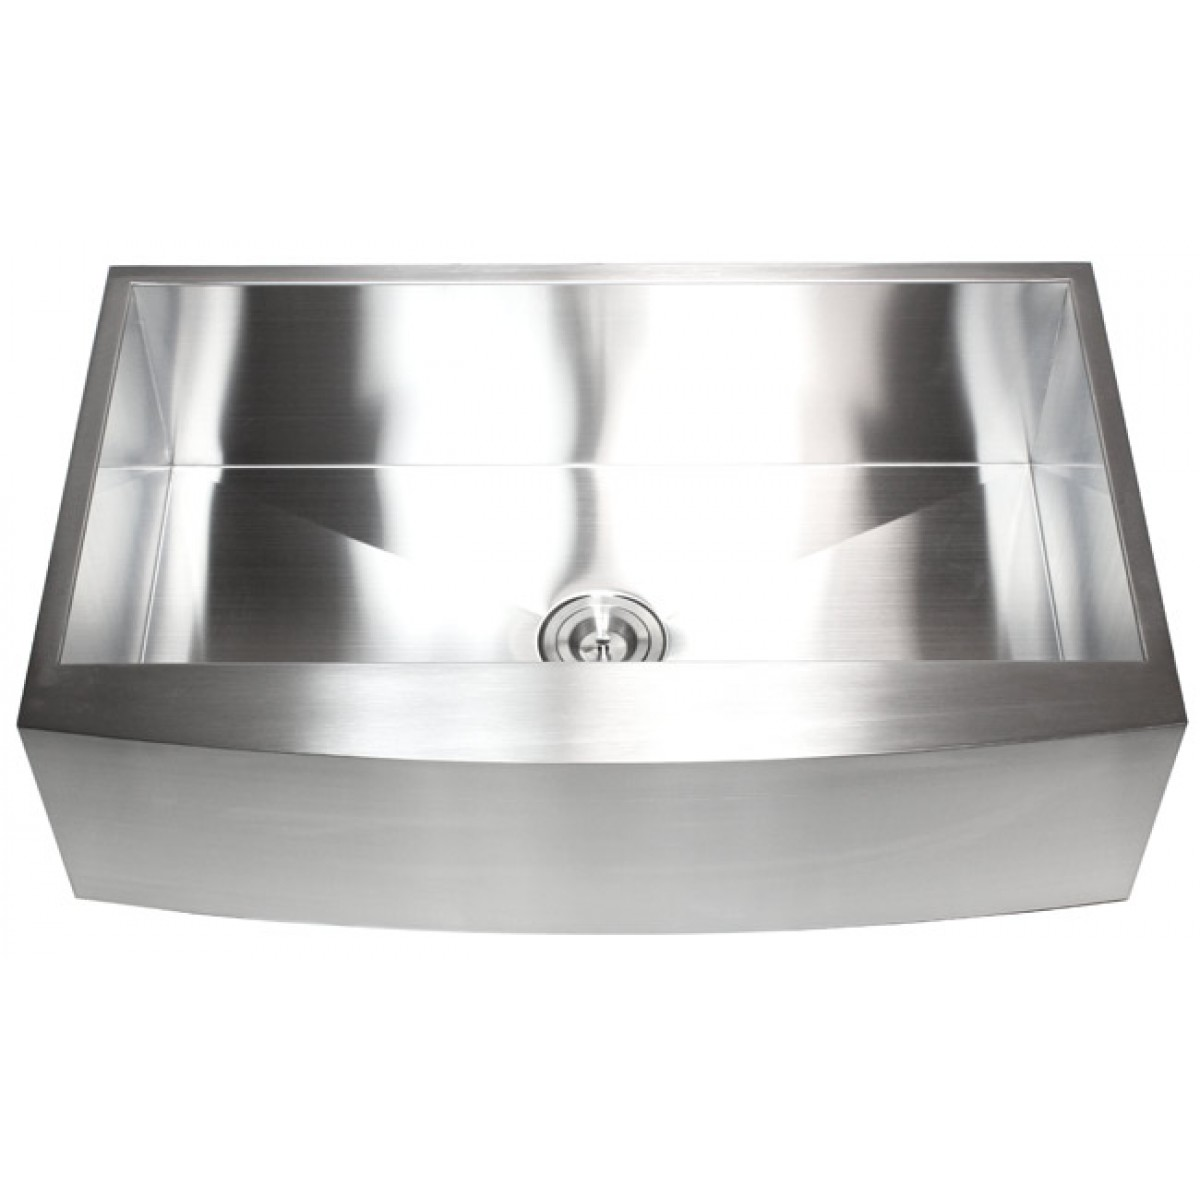 7 Inch Apron Front Sink : ... Inch Stainless Steel Single Bowl Curved Front Farm Apron Kitchen Sink